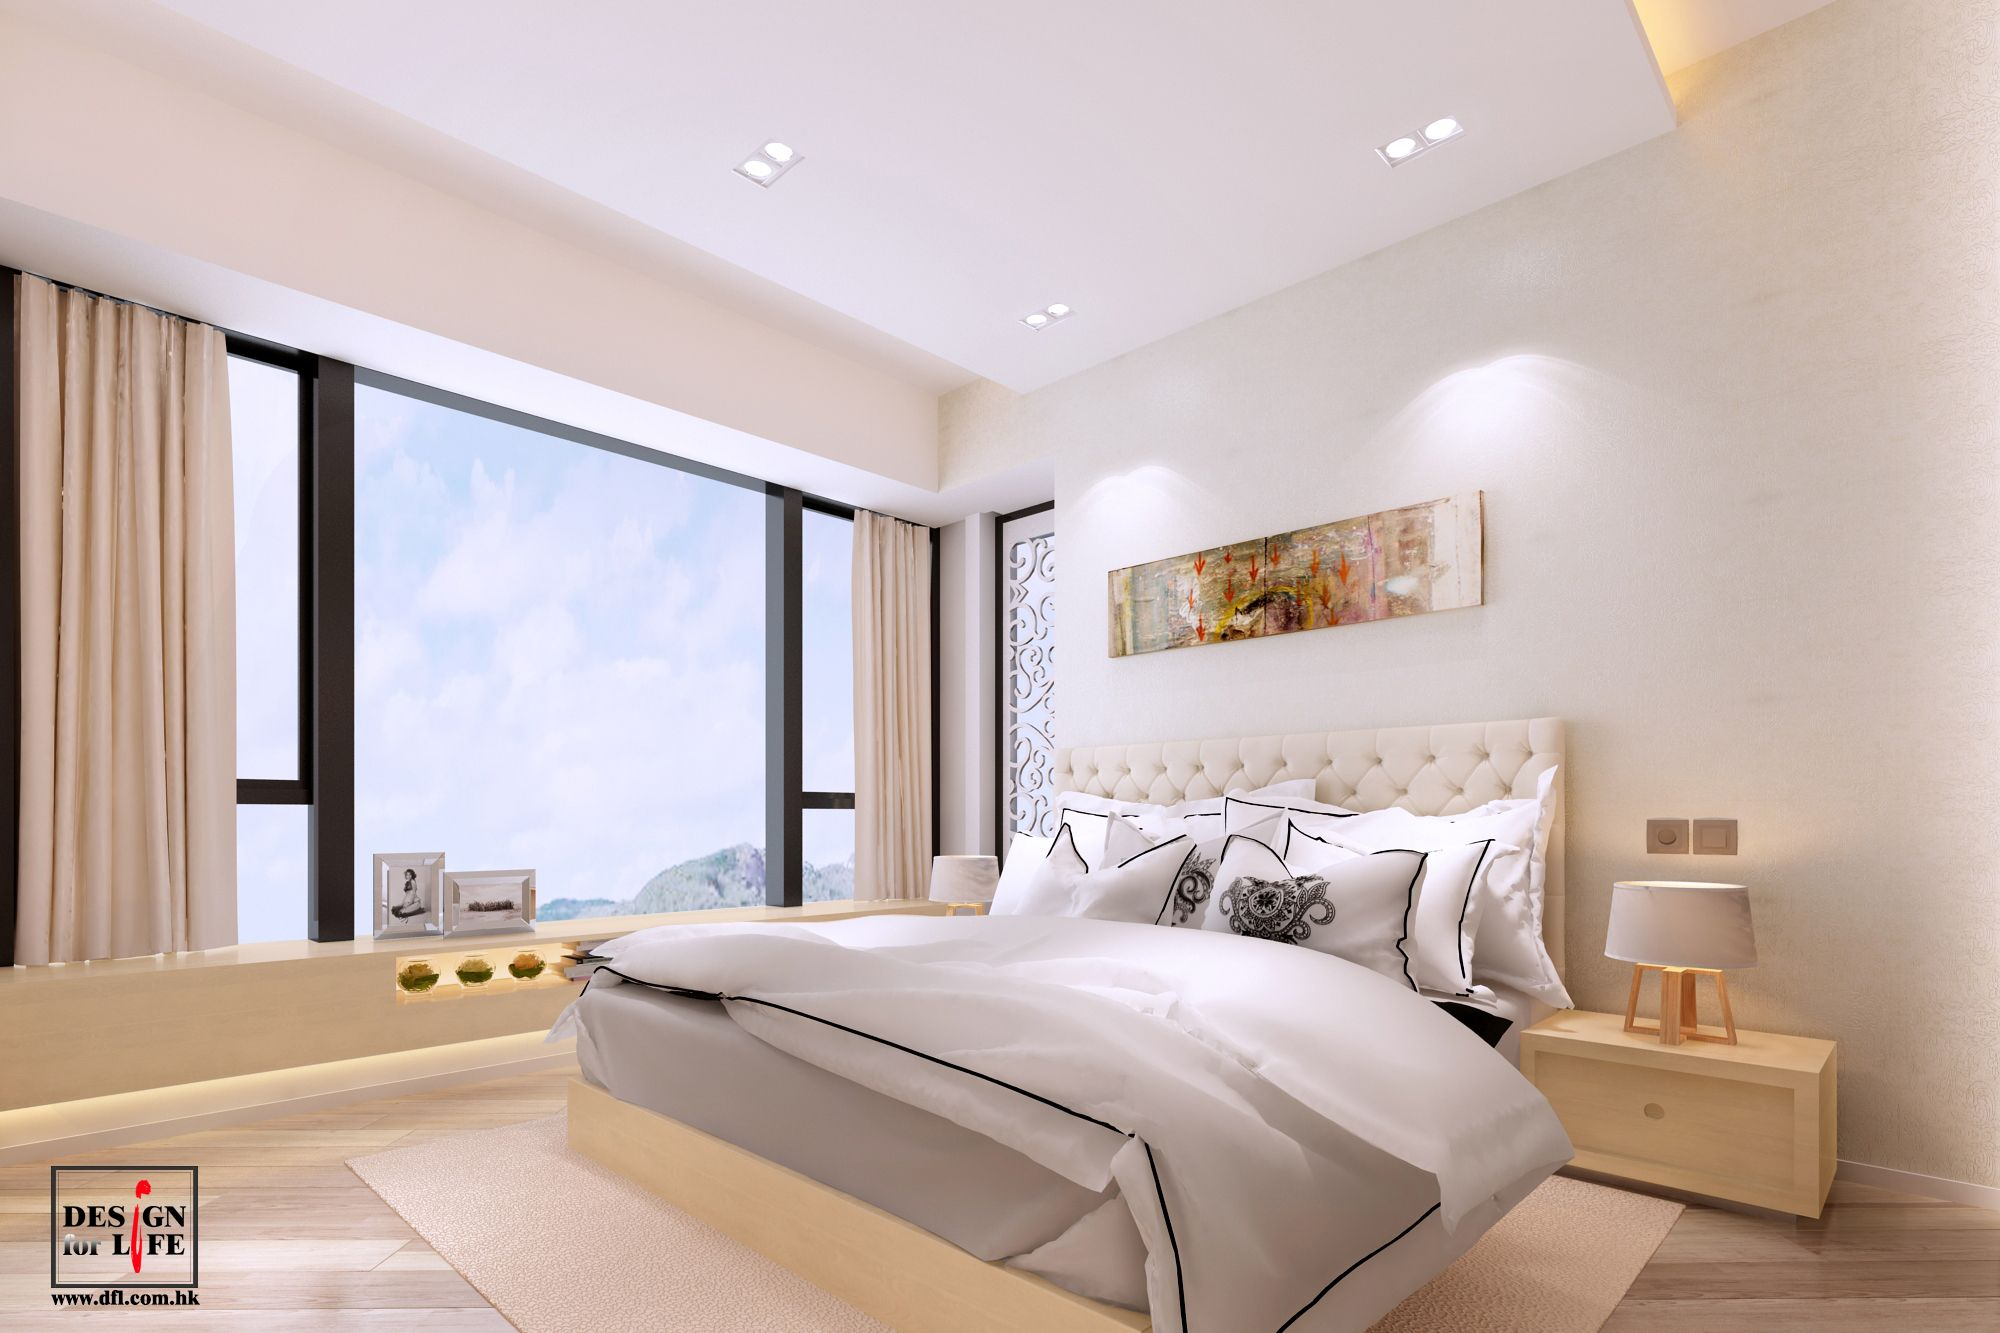 Designs Bedroom Project The Visionary Of Hong Kong  3D Rendering  Master Bedroom